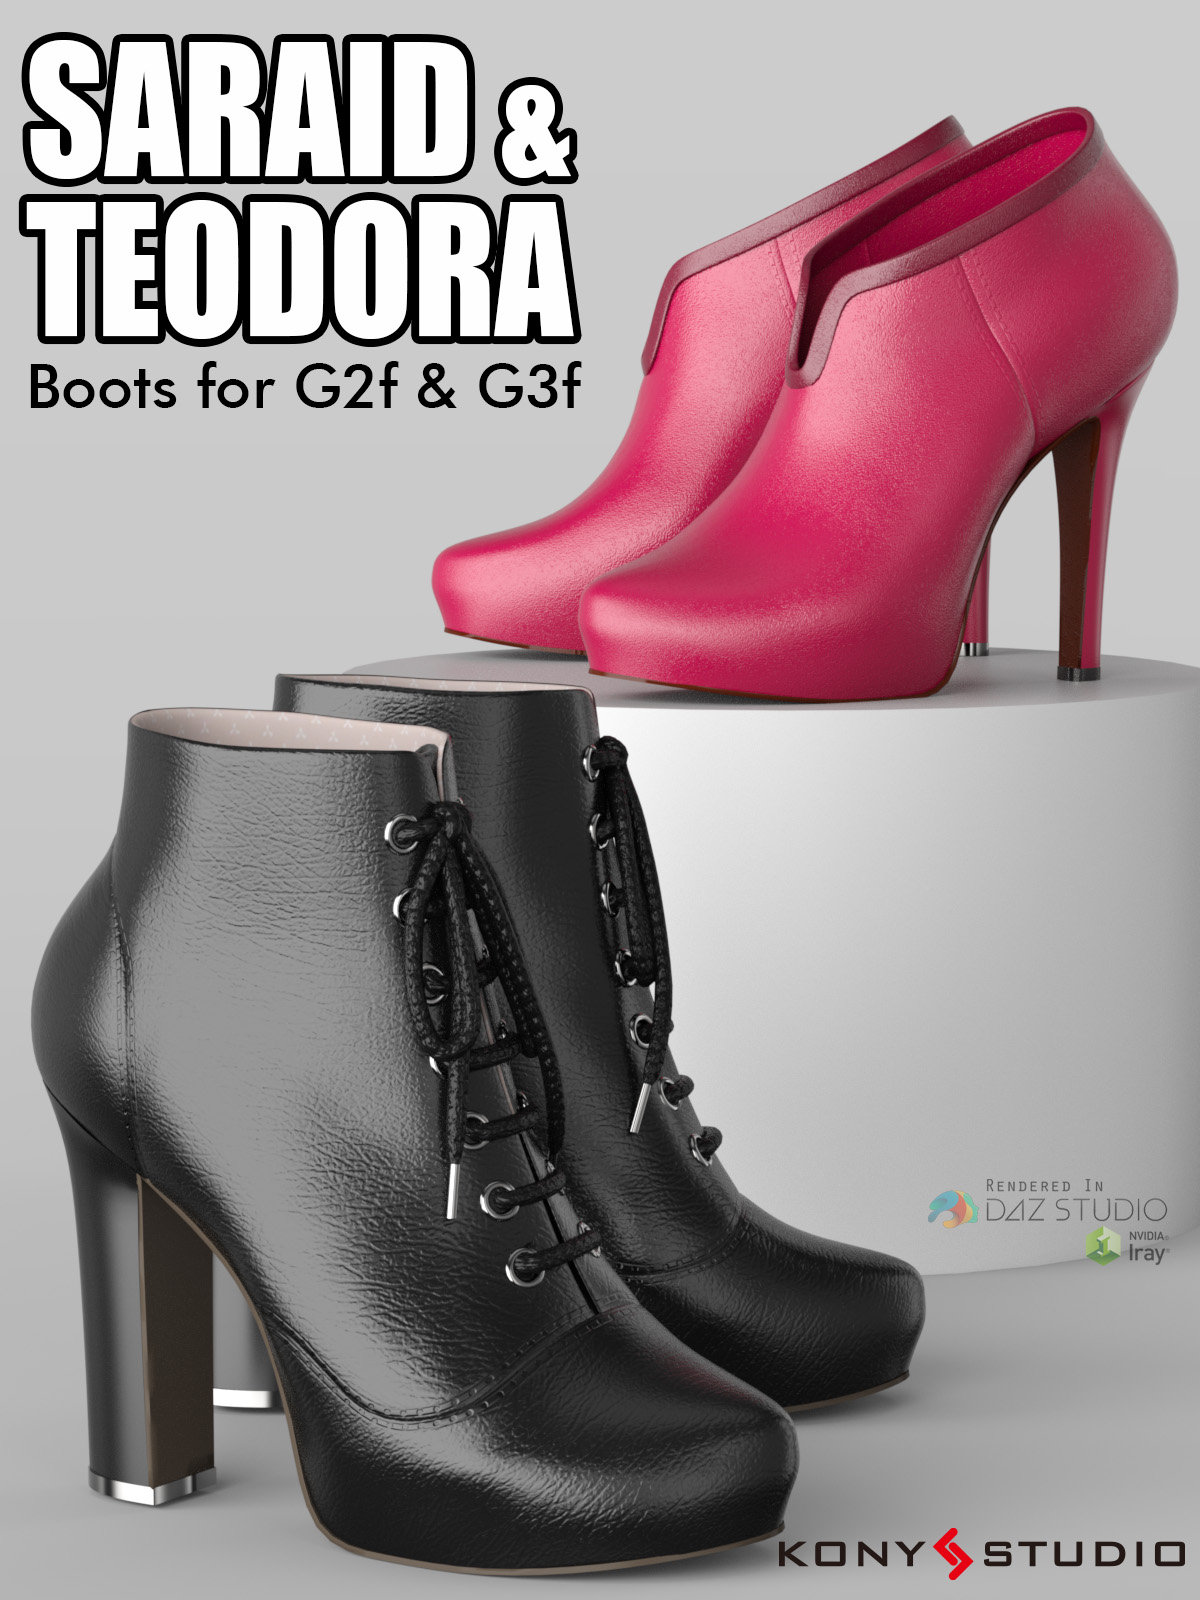 Saraid & Teodora Boots for G2f and G3f by kony